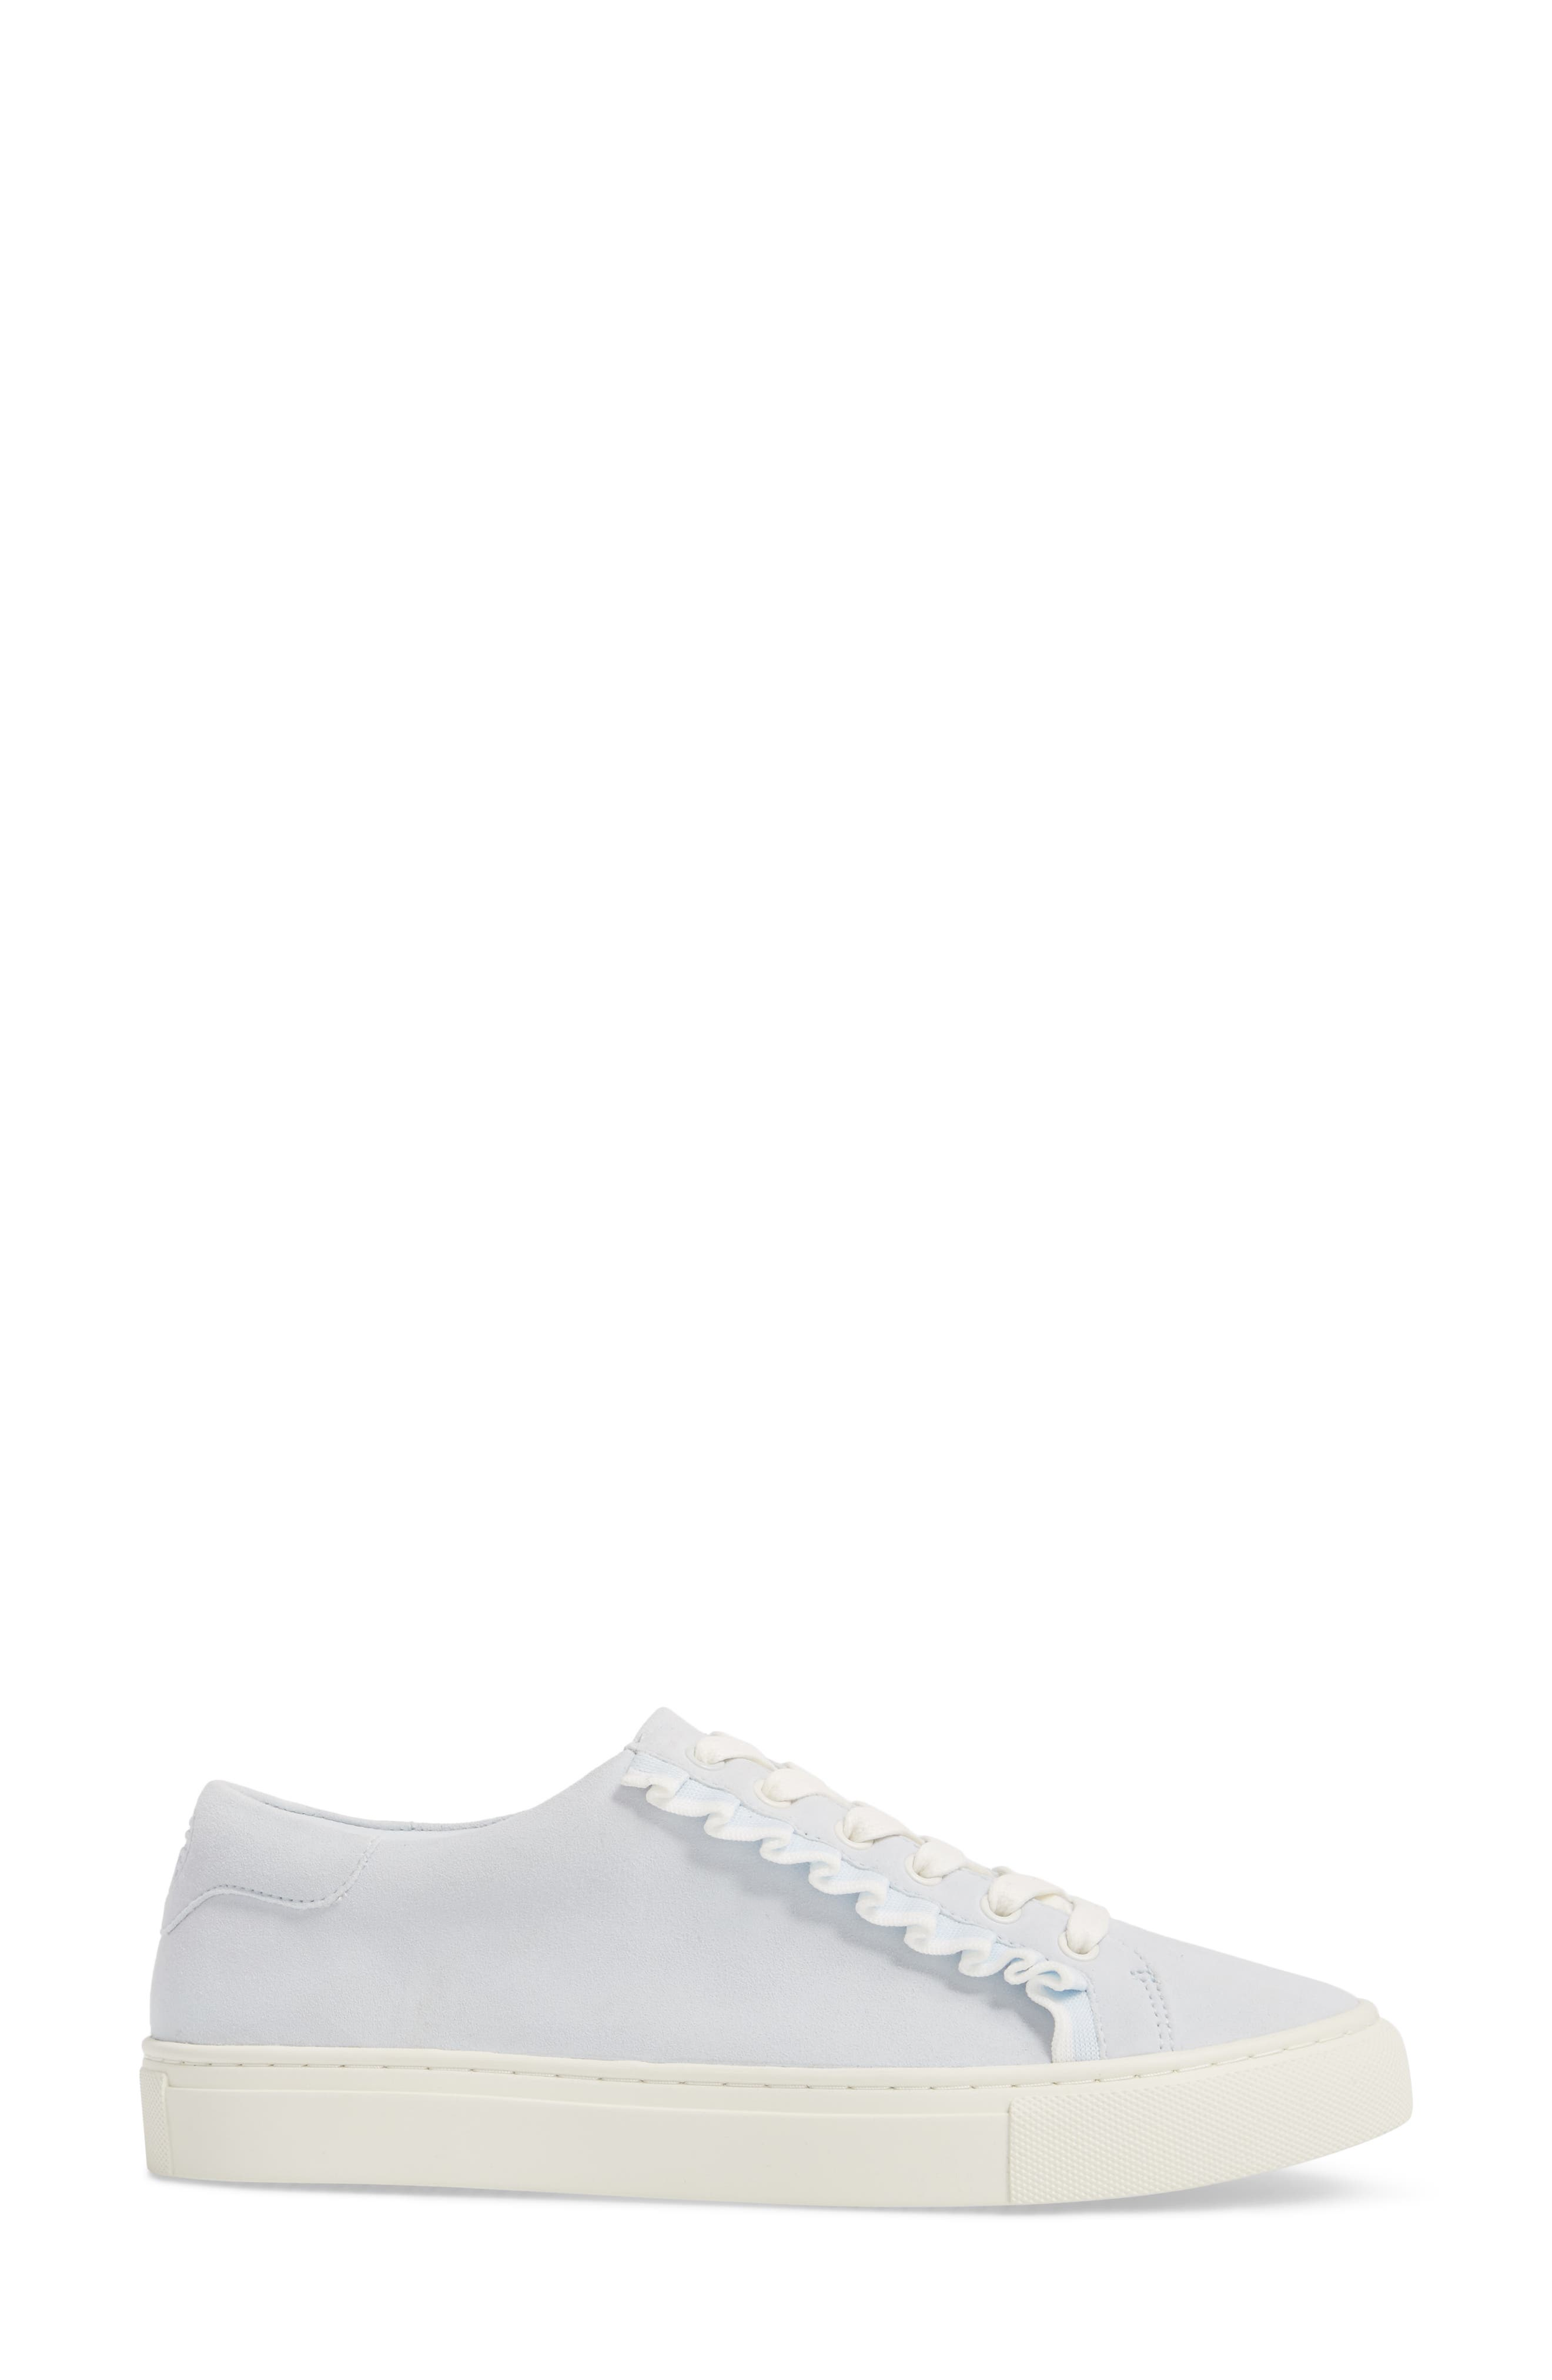 Ruffle Sneaker,                             Alternate thumbnail 3, color,                             401